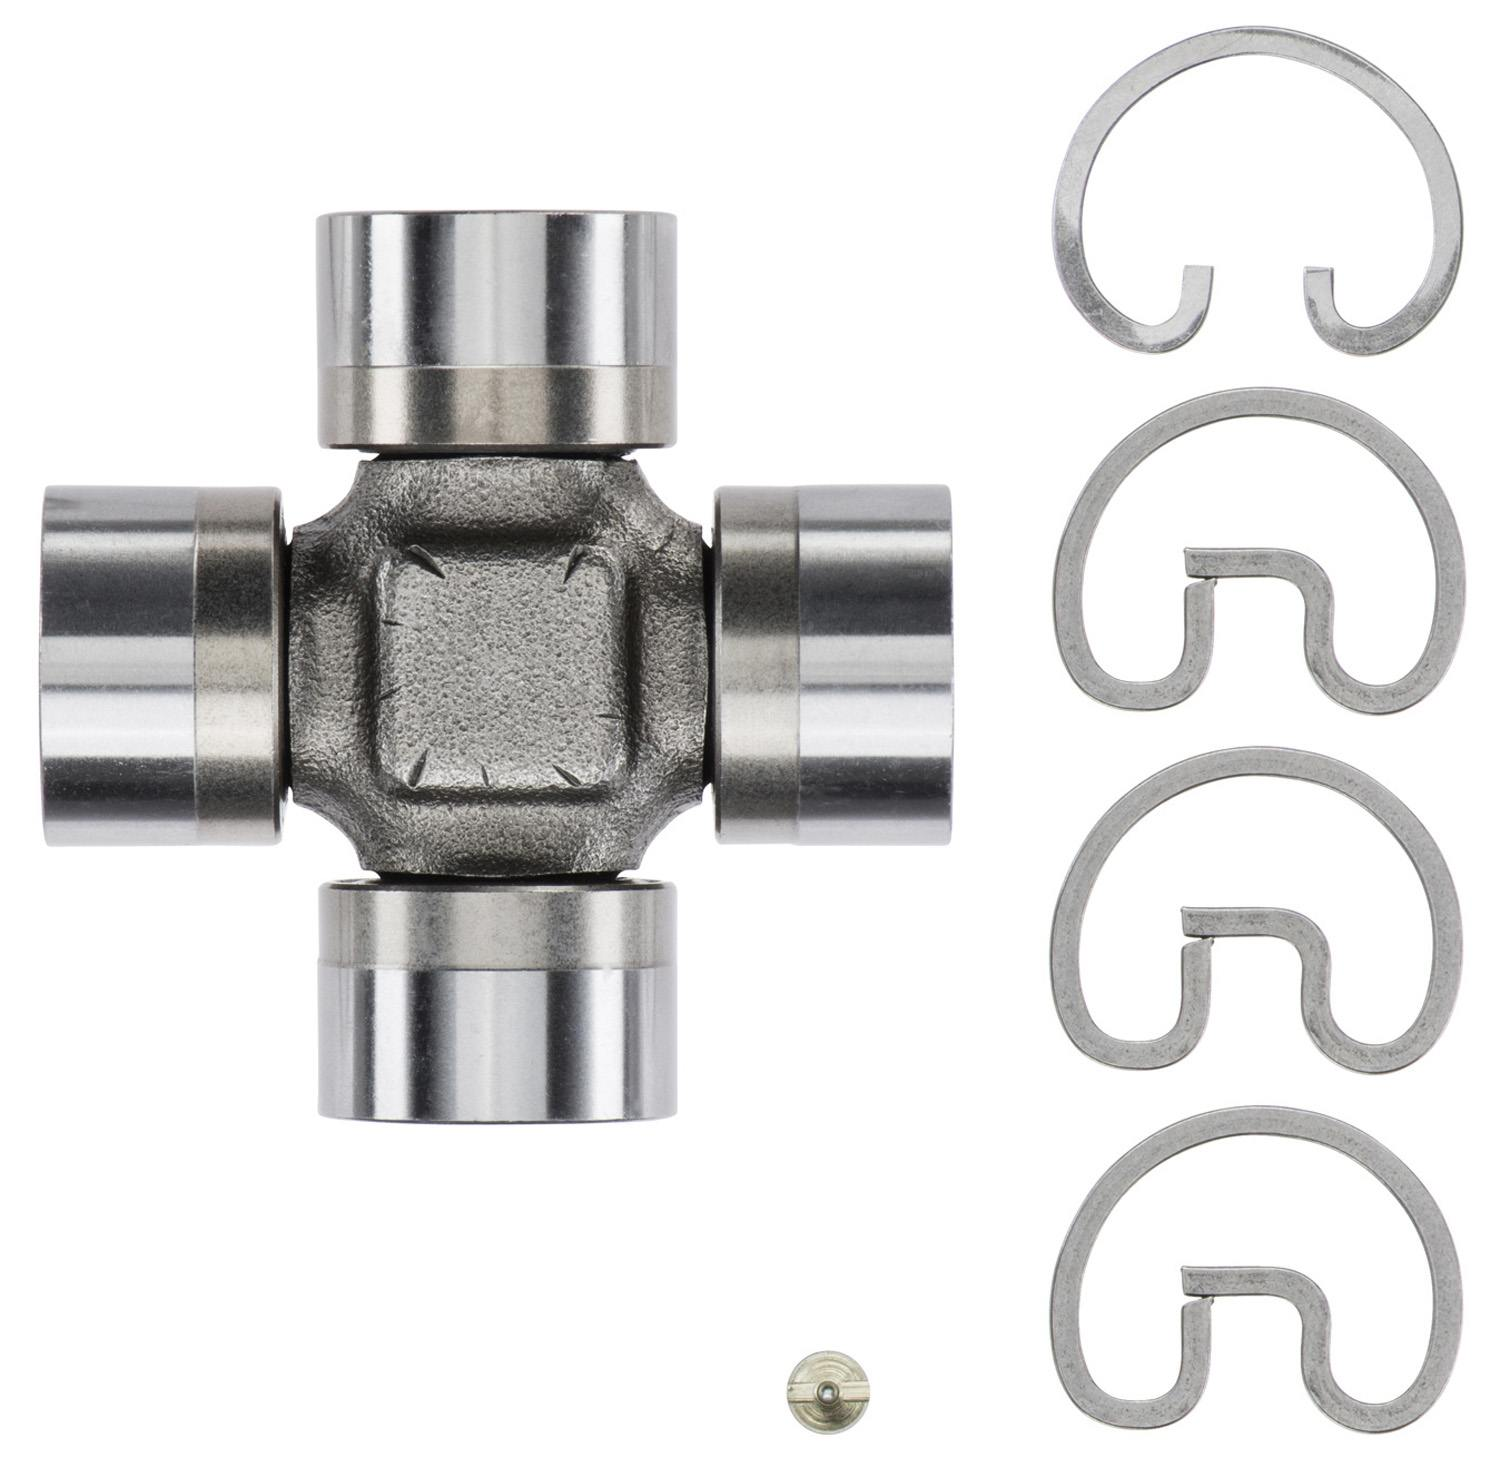 ACDELCO PROFESSIONAL - Universal Joint - DCC 45U0188